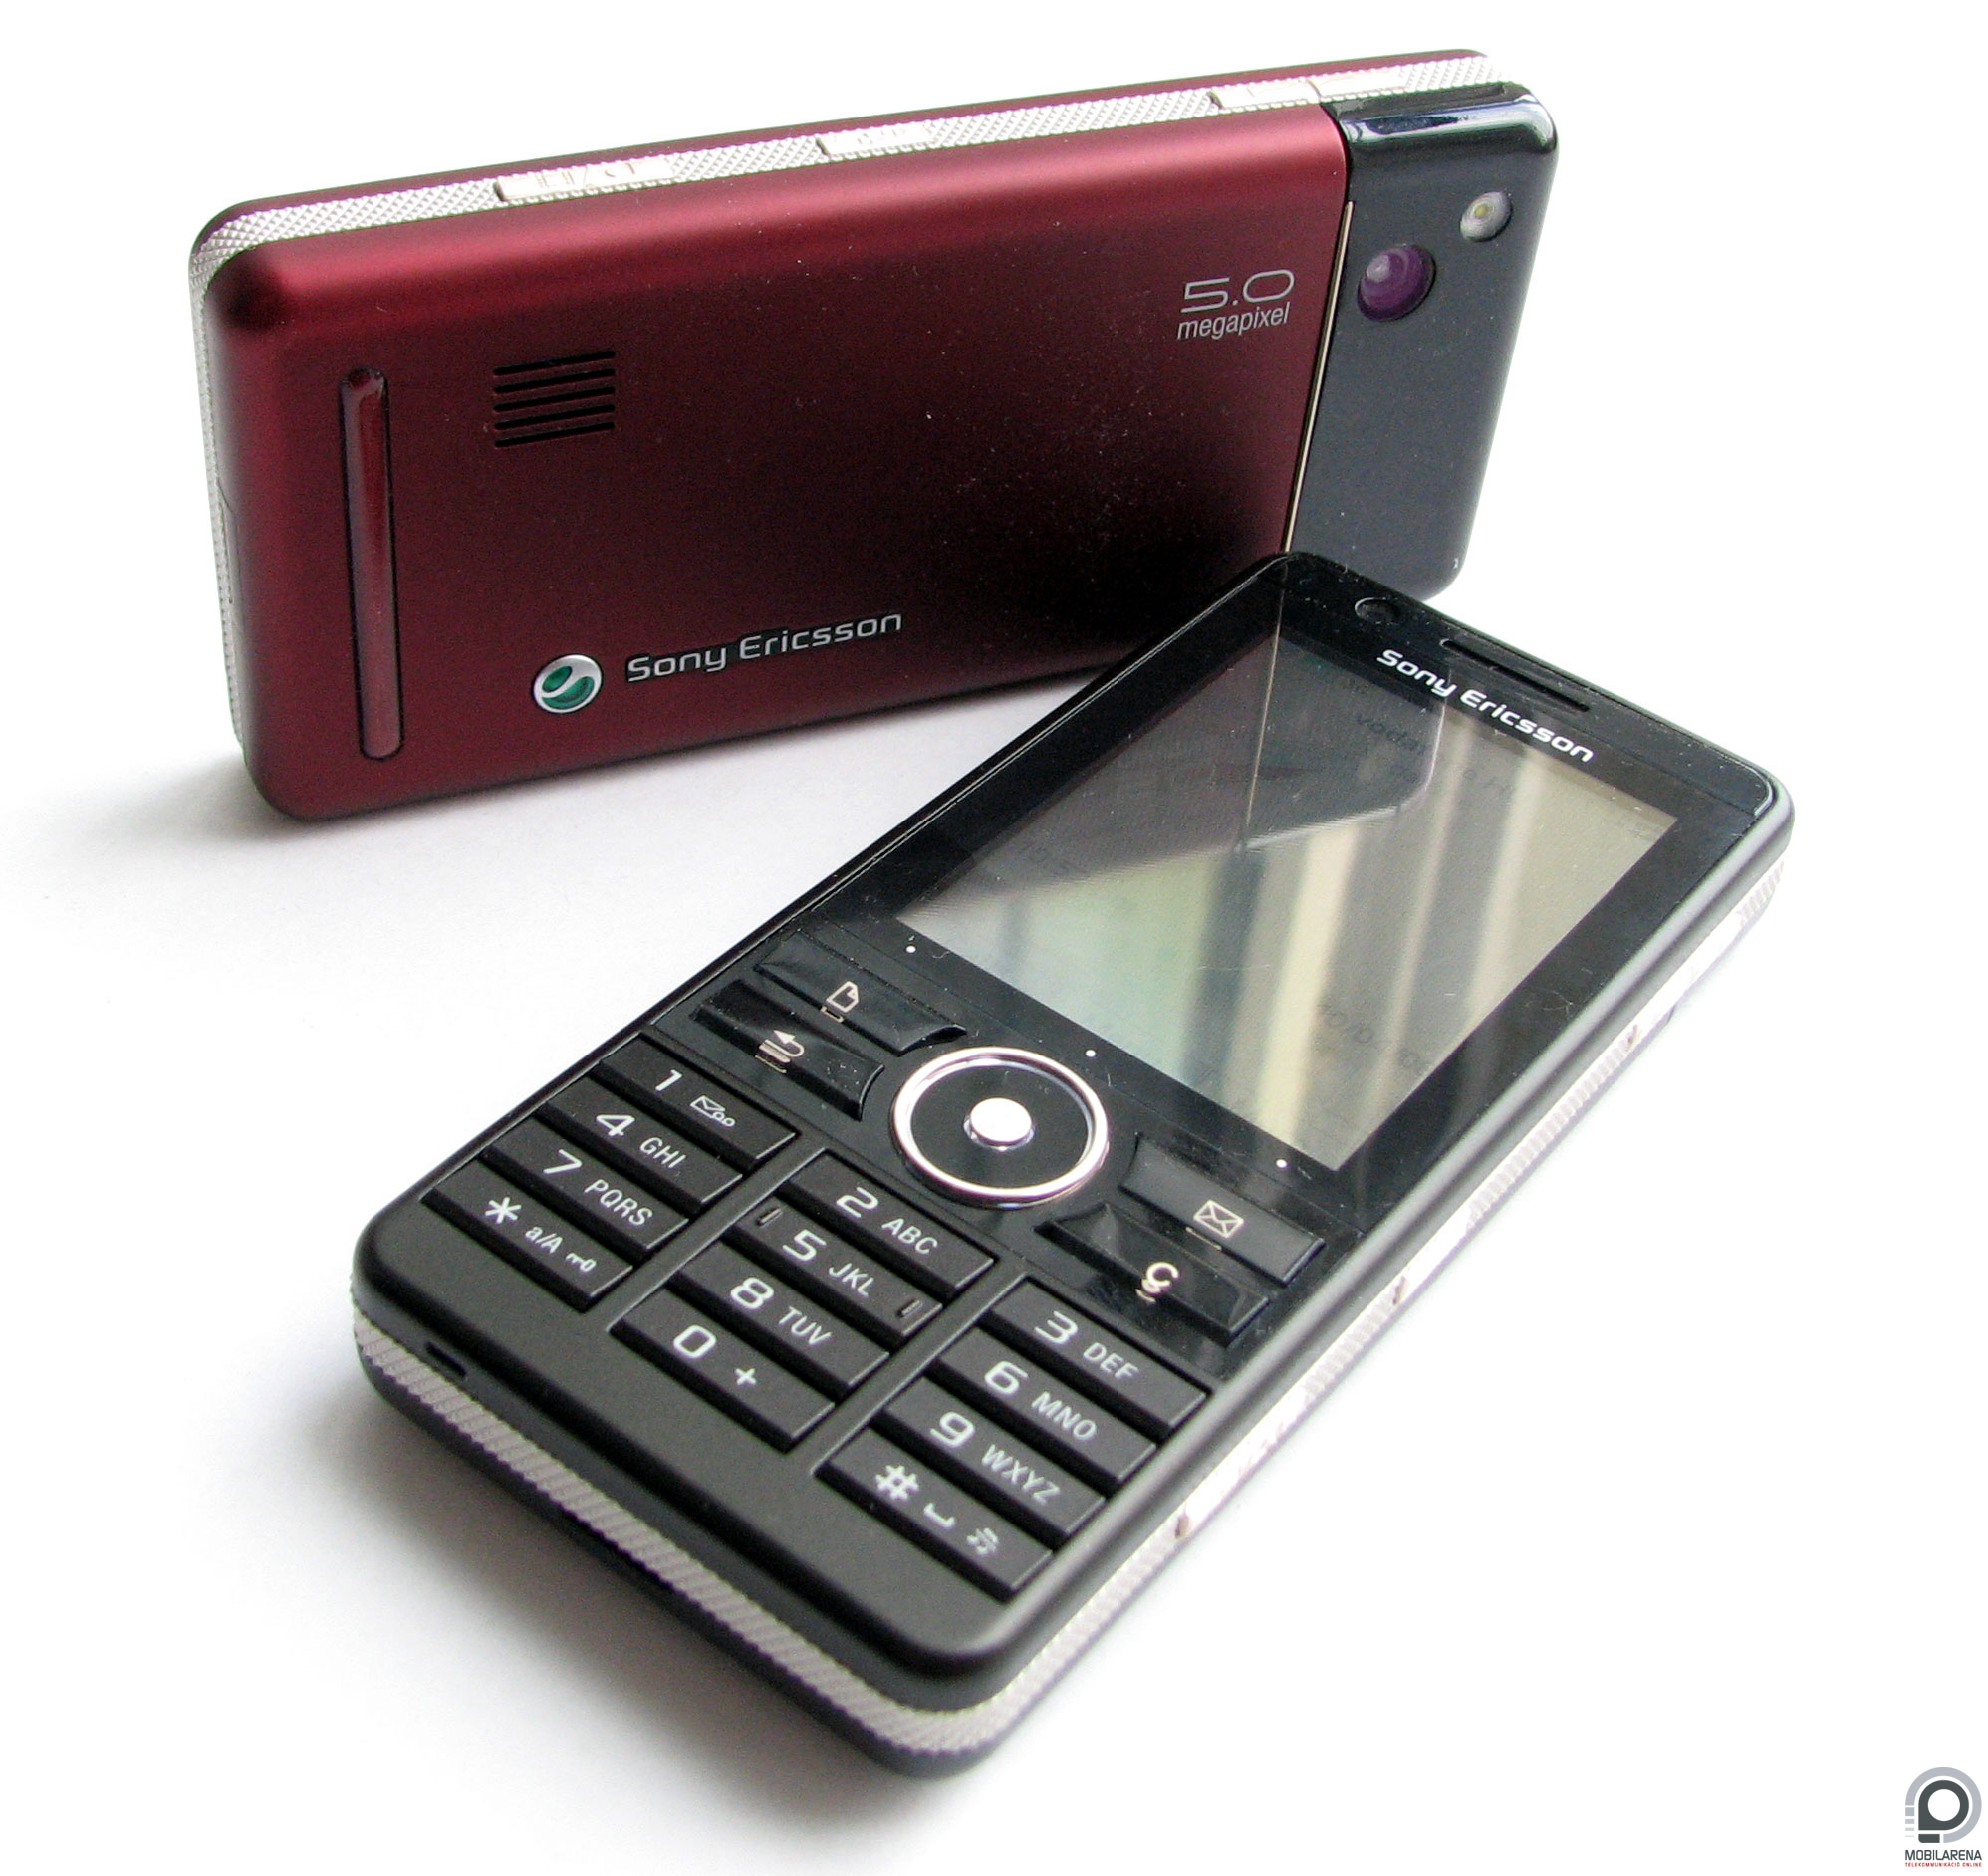 Sony Ericsson G900 - touching in focus